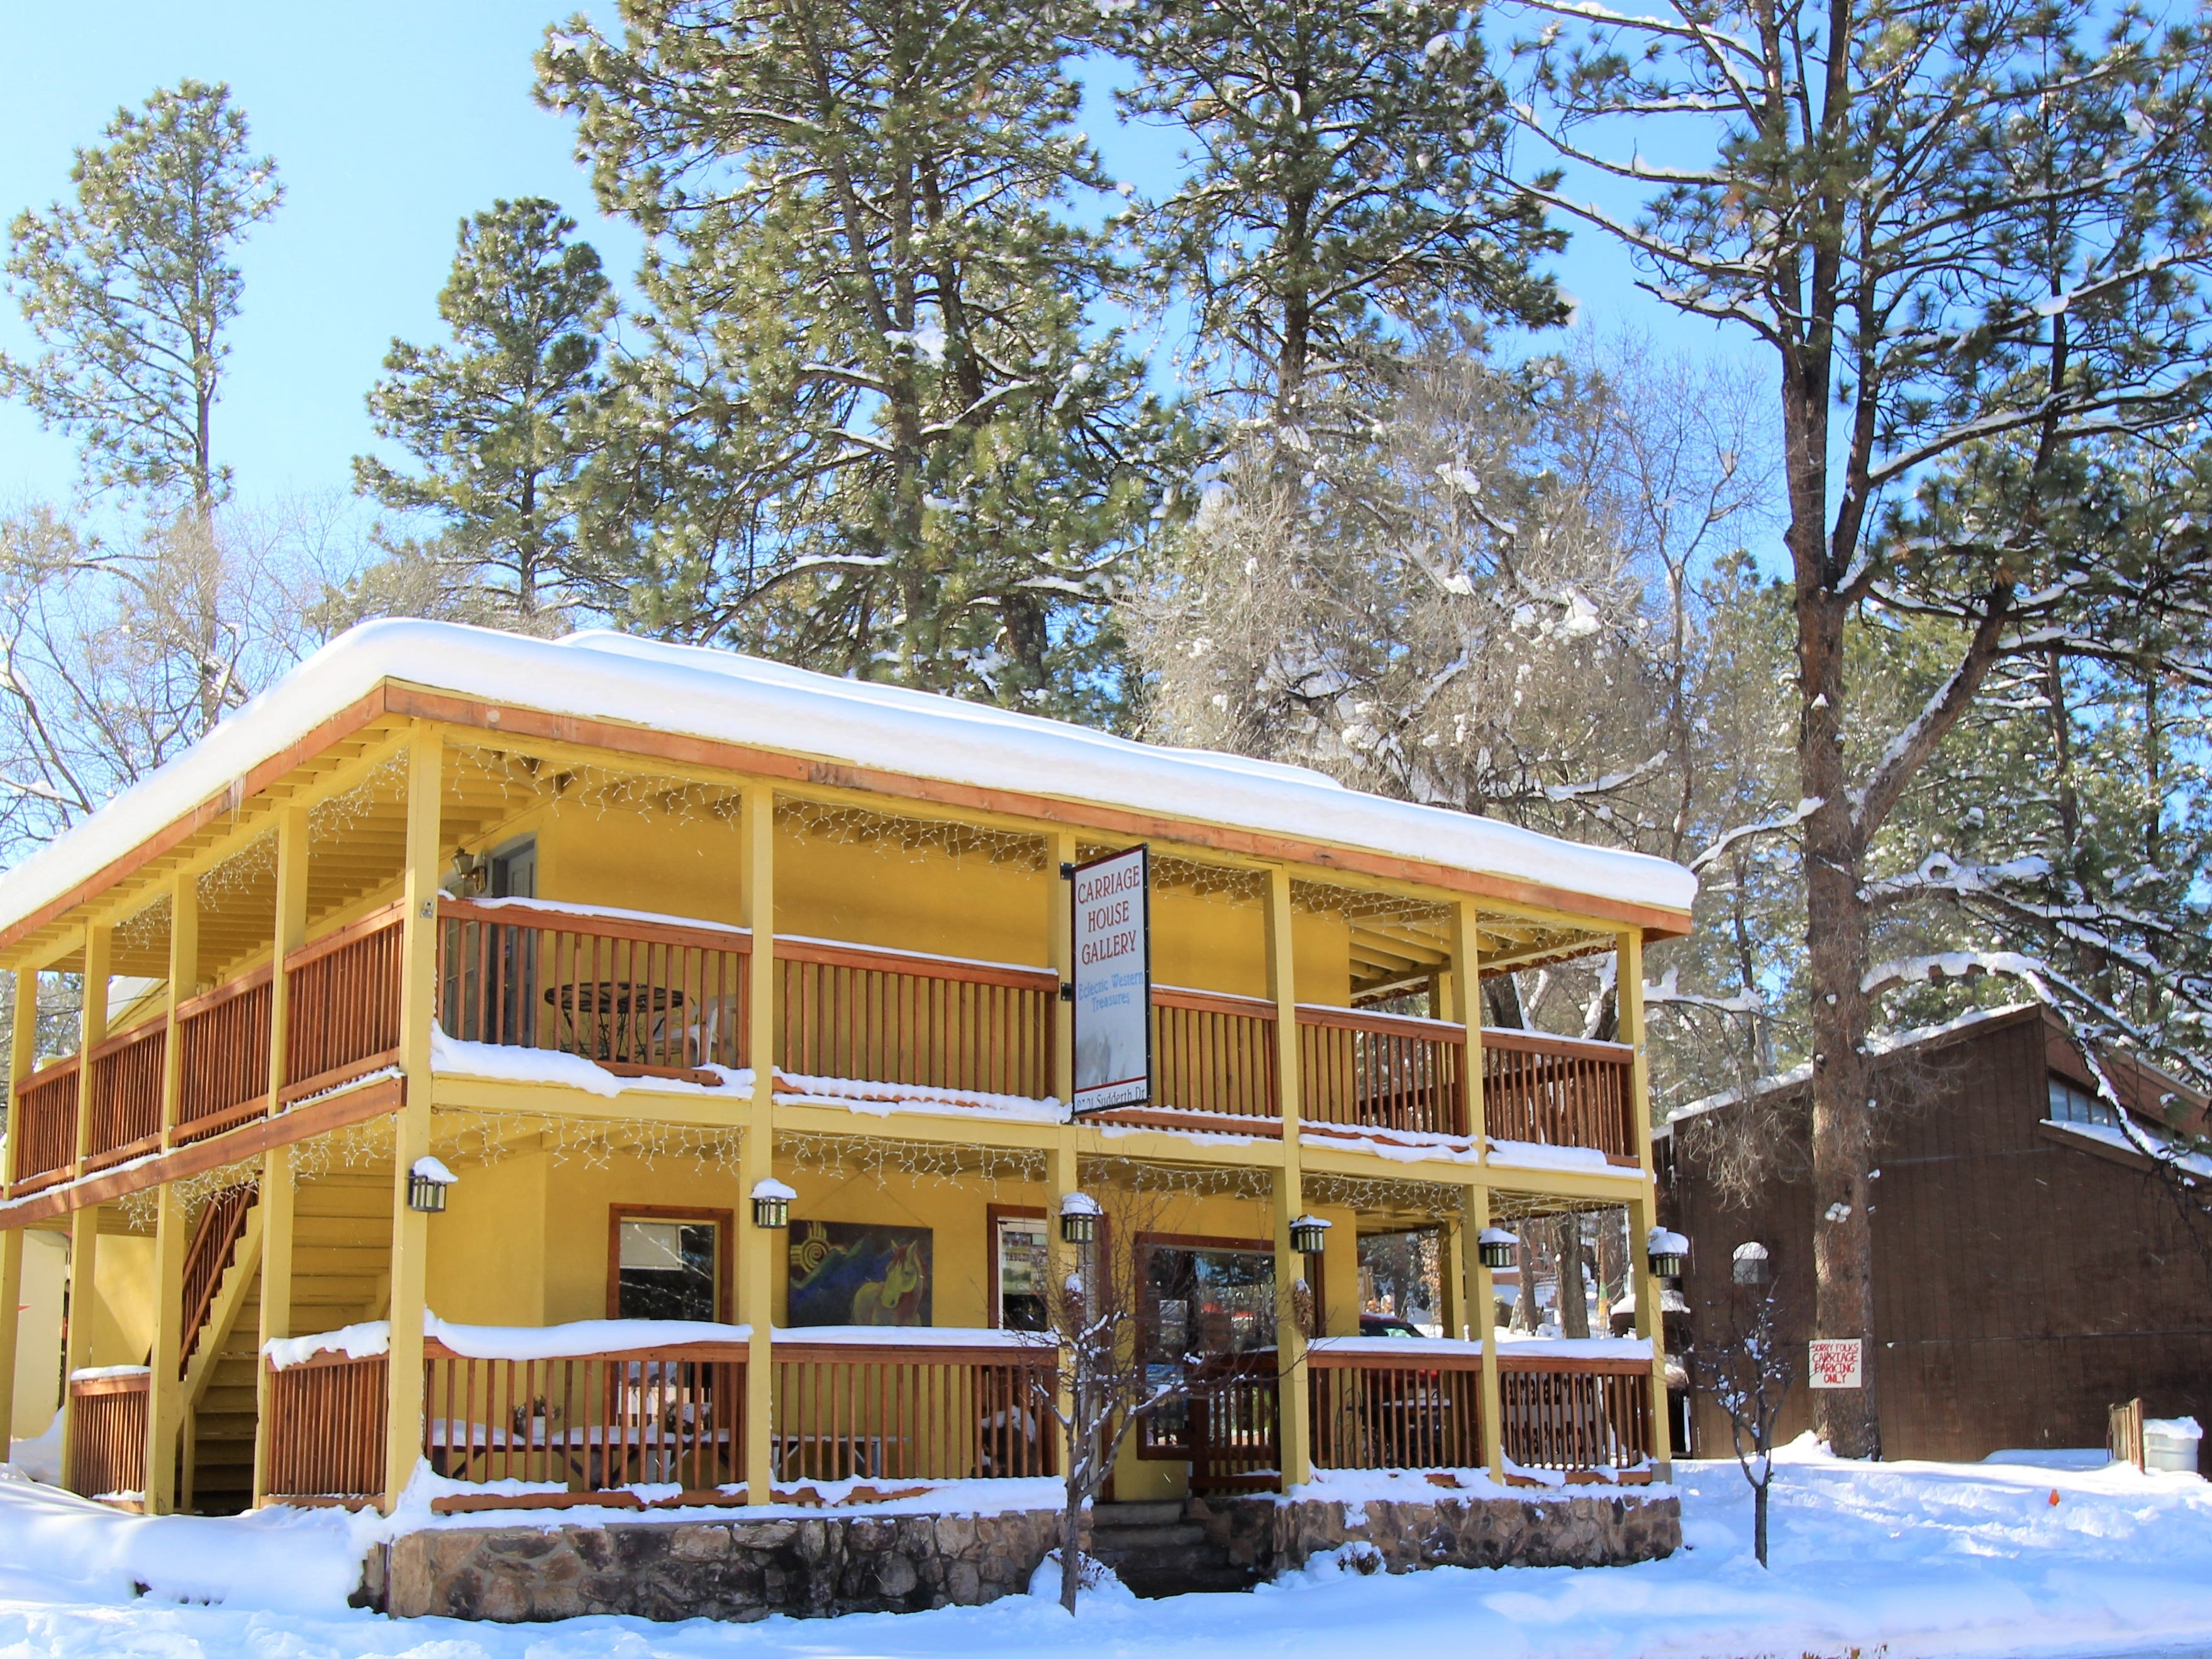 A winter wonderland has taken hold throughout the Village of Ruidoso creating spectacular sights to see.